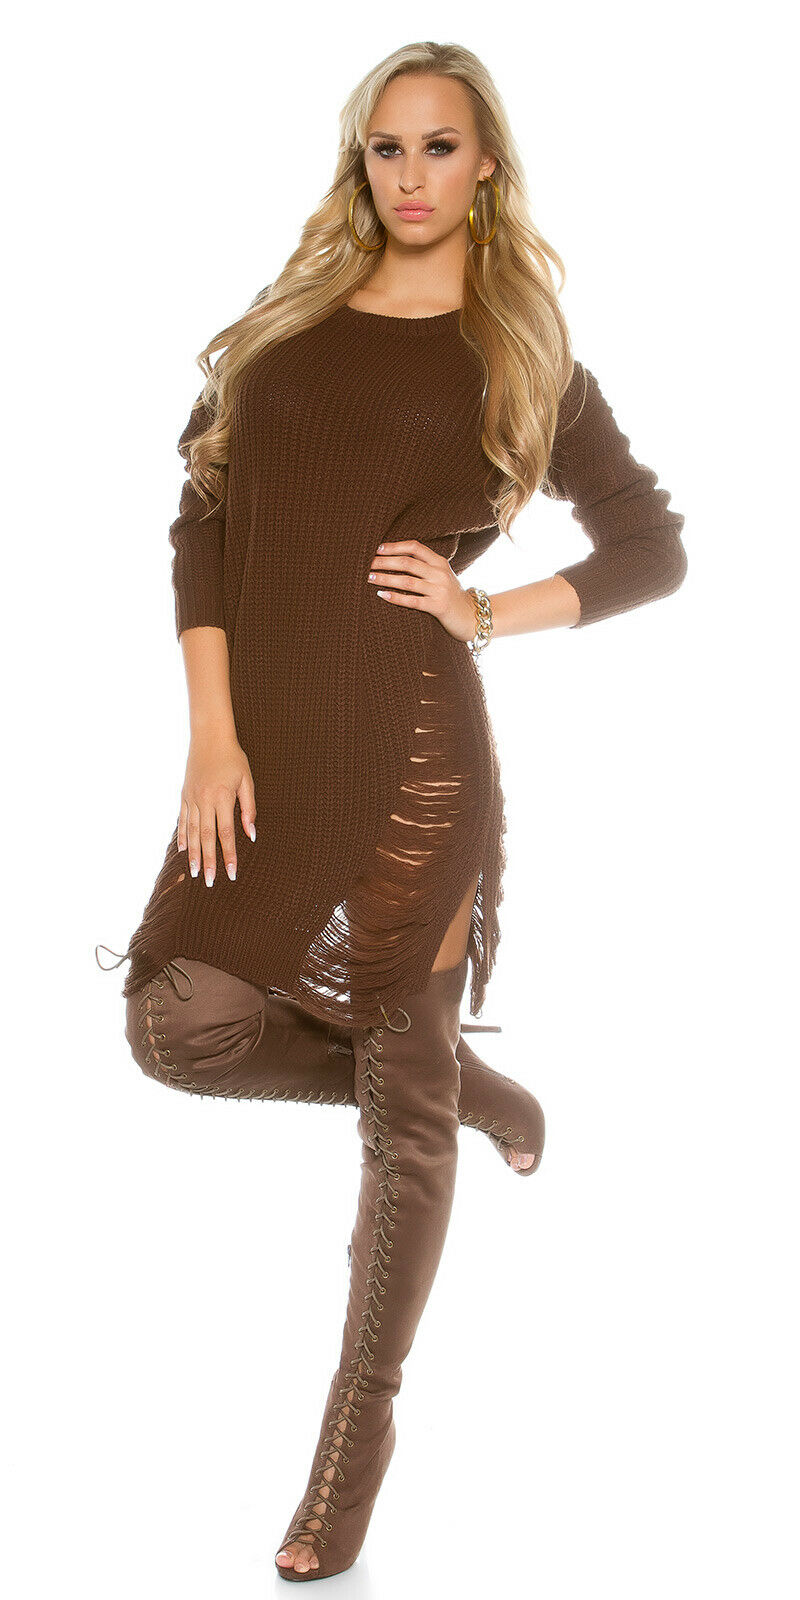 SEXY OVERSIZED BROWN KNIT SLASHED SWEATER ONE SIZE FITS FITS FITS MOST 74b460